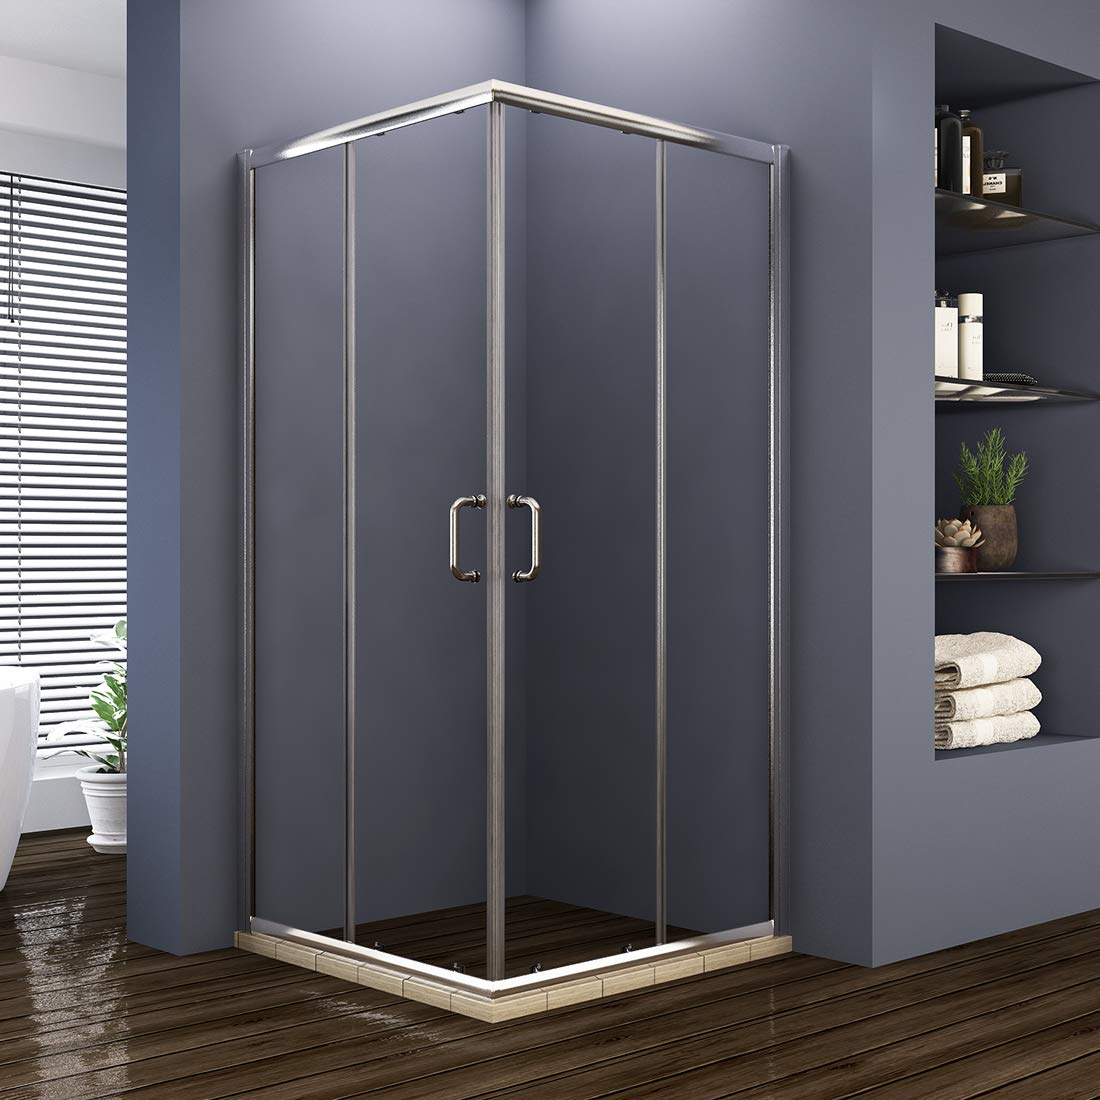 ELEGANT Double Opening Sliding Shower Enclosure, 36 D. x 36 W. x 72 H. 2 Stationary Panel Glass Shower Door, 1 4 Clear Glass, Chrome Finish